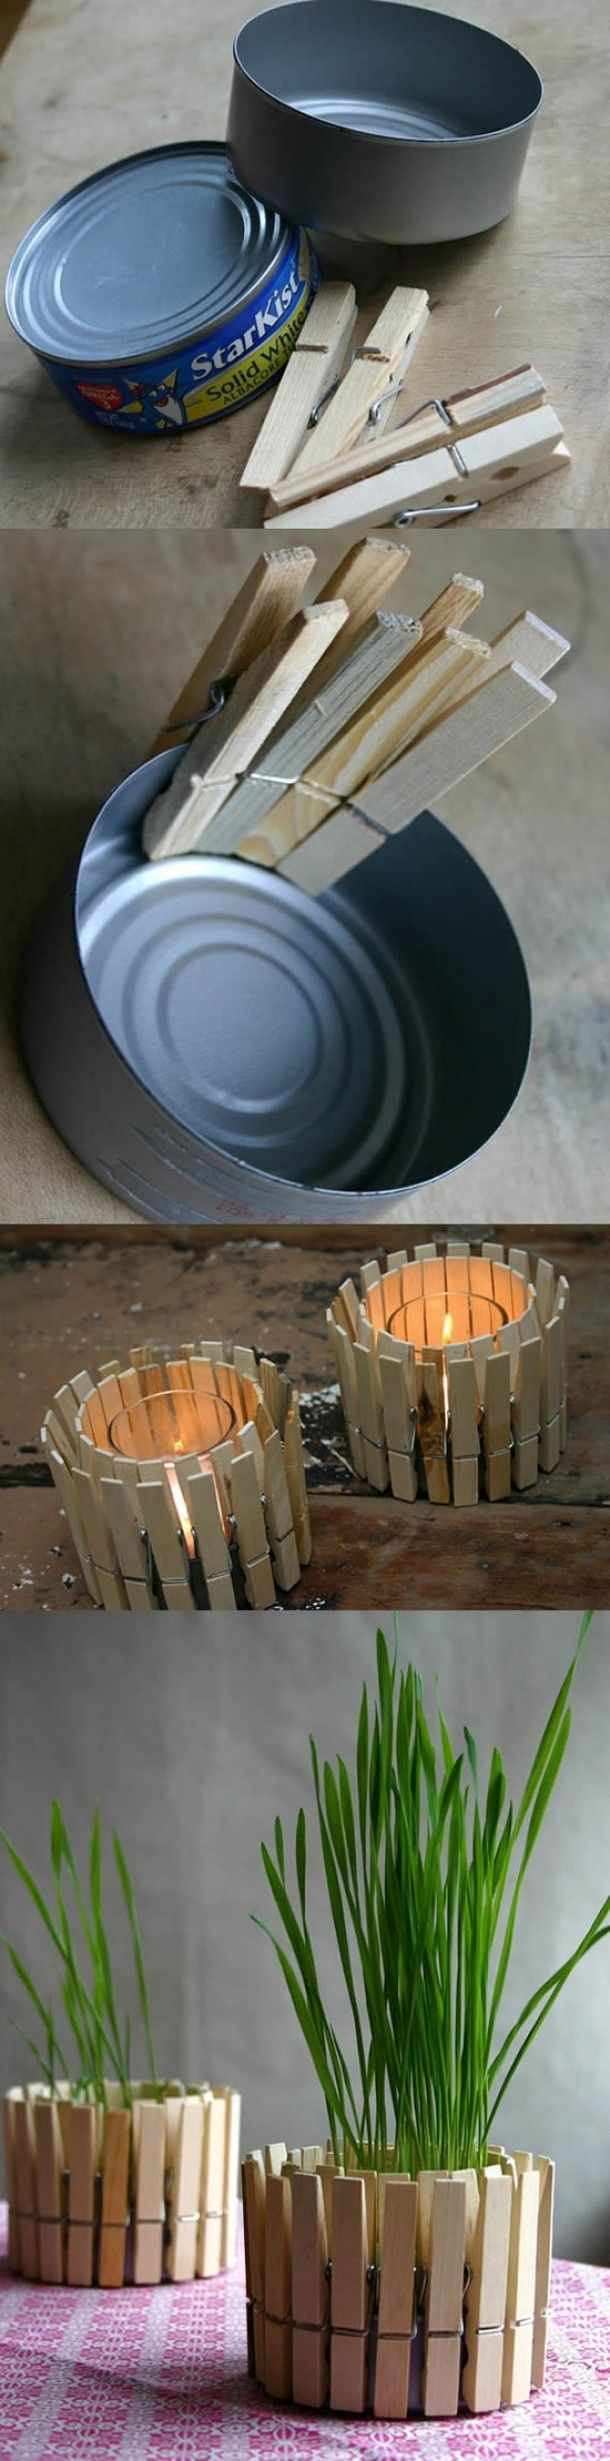 Clothes pins on tuna can for a cool candle tea light holder